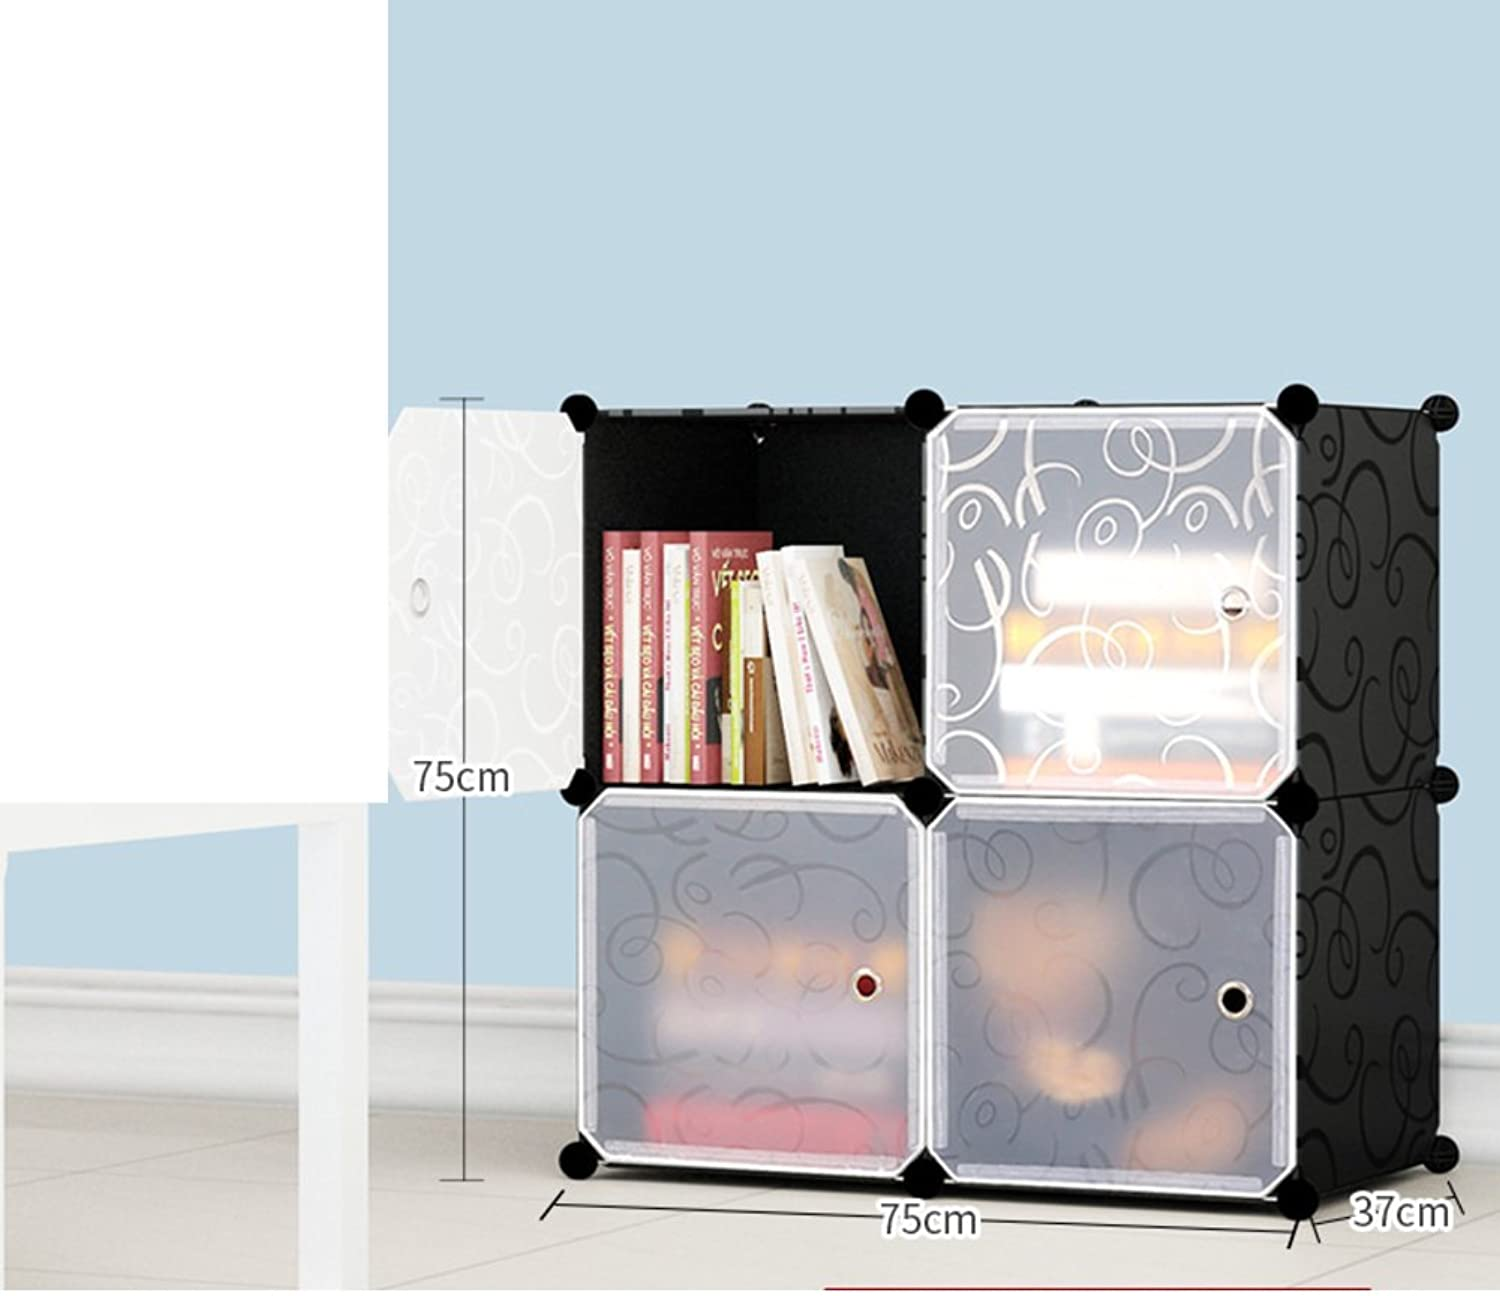 Simple Bookcase,Free Combination Storage Assembly Storage Cabinet Plastic Bookshelf Floor-Standing-I 75x37x75cm(30x15x30)